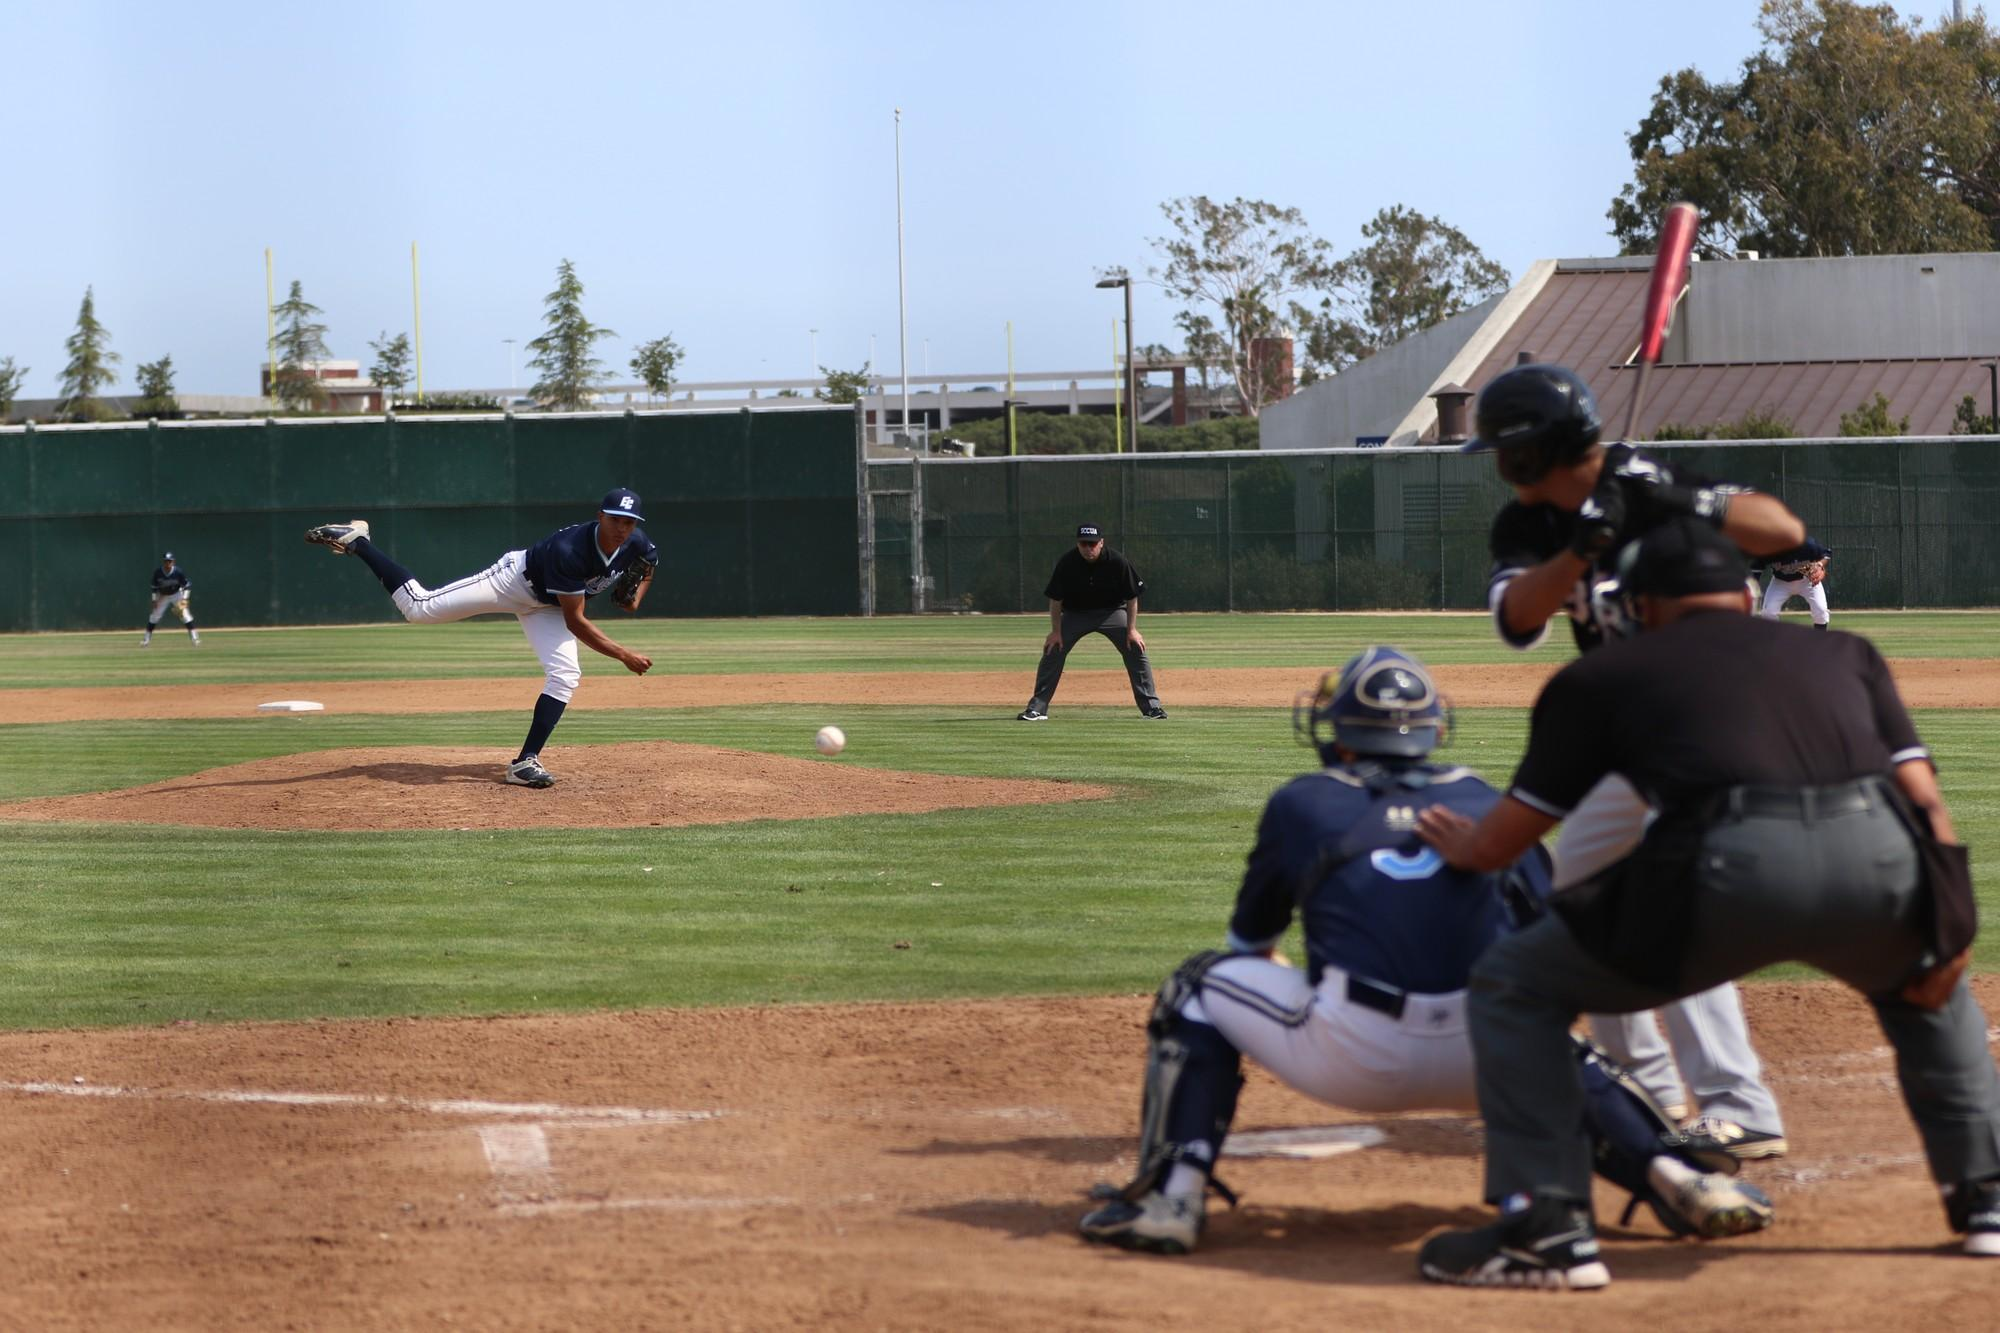 Baseball team drops fourth straight in loss to Long Beach City College